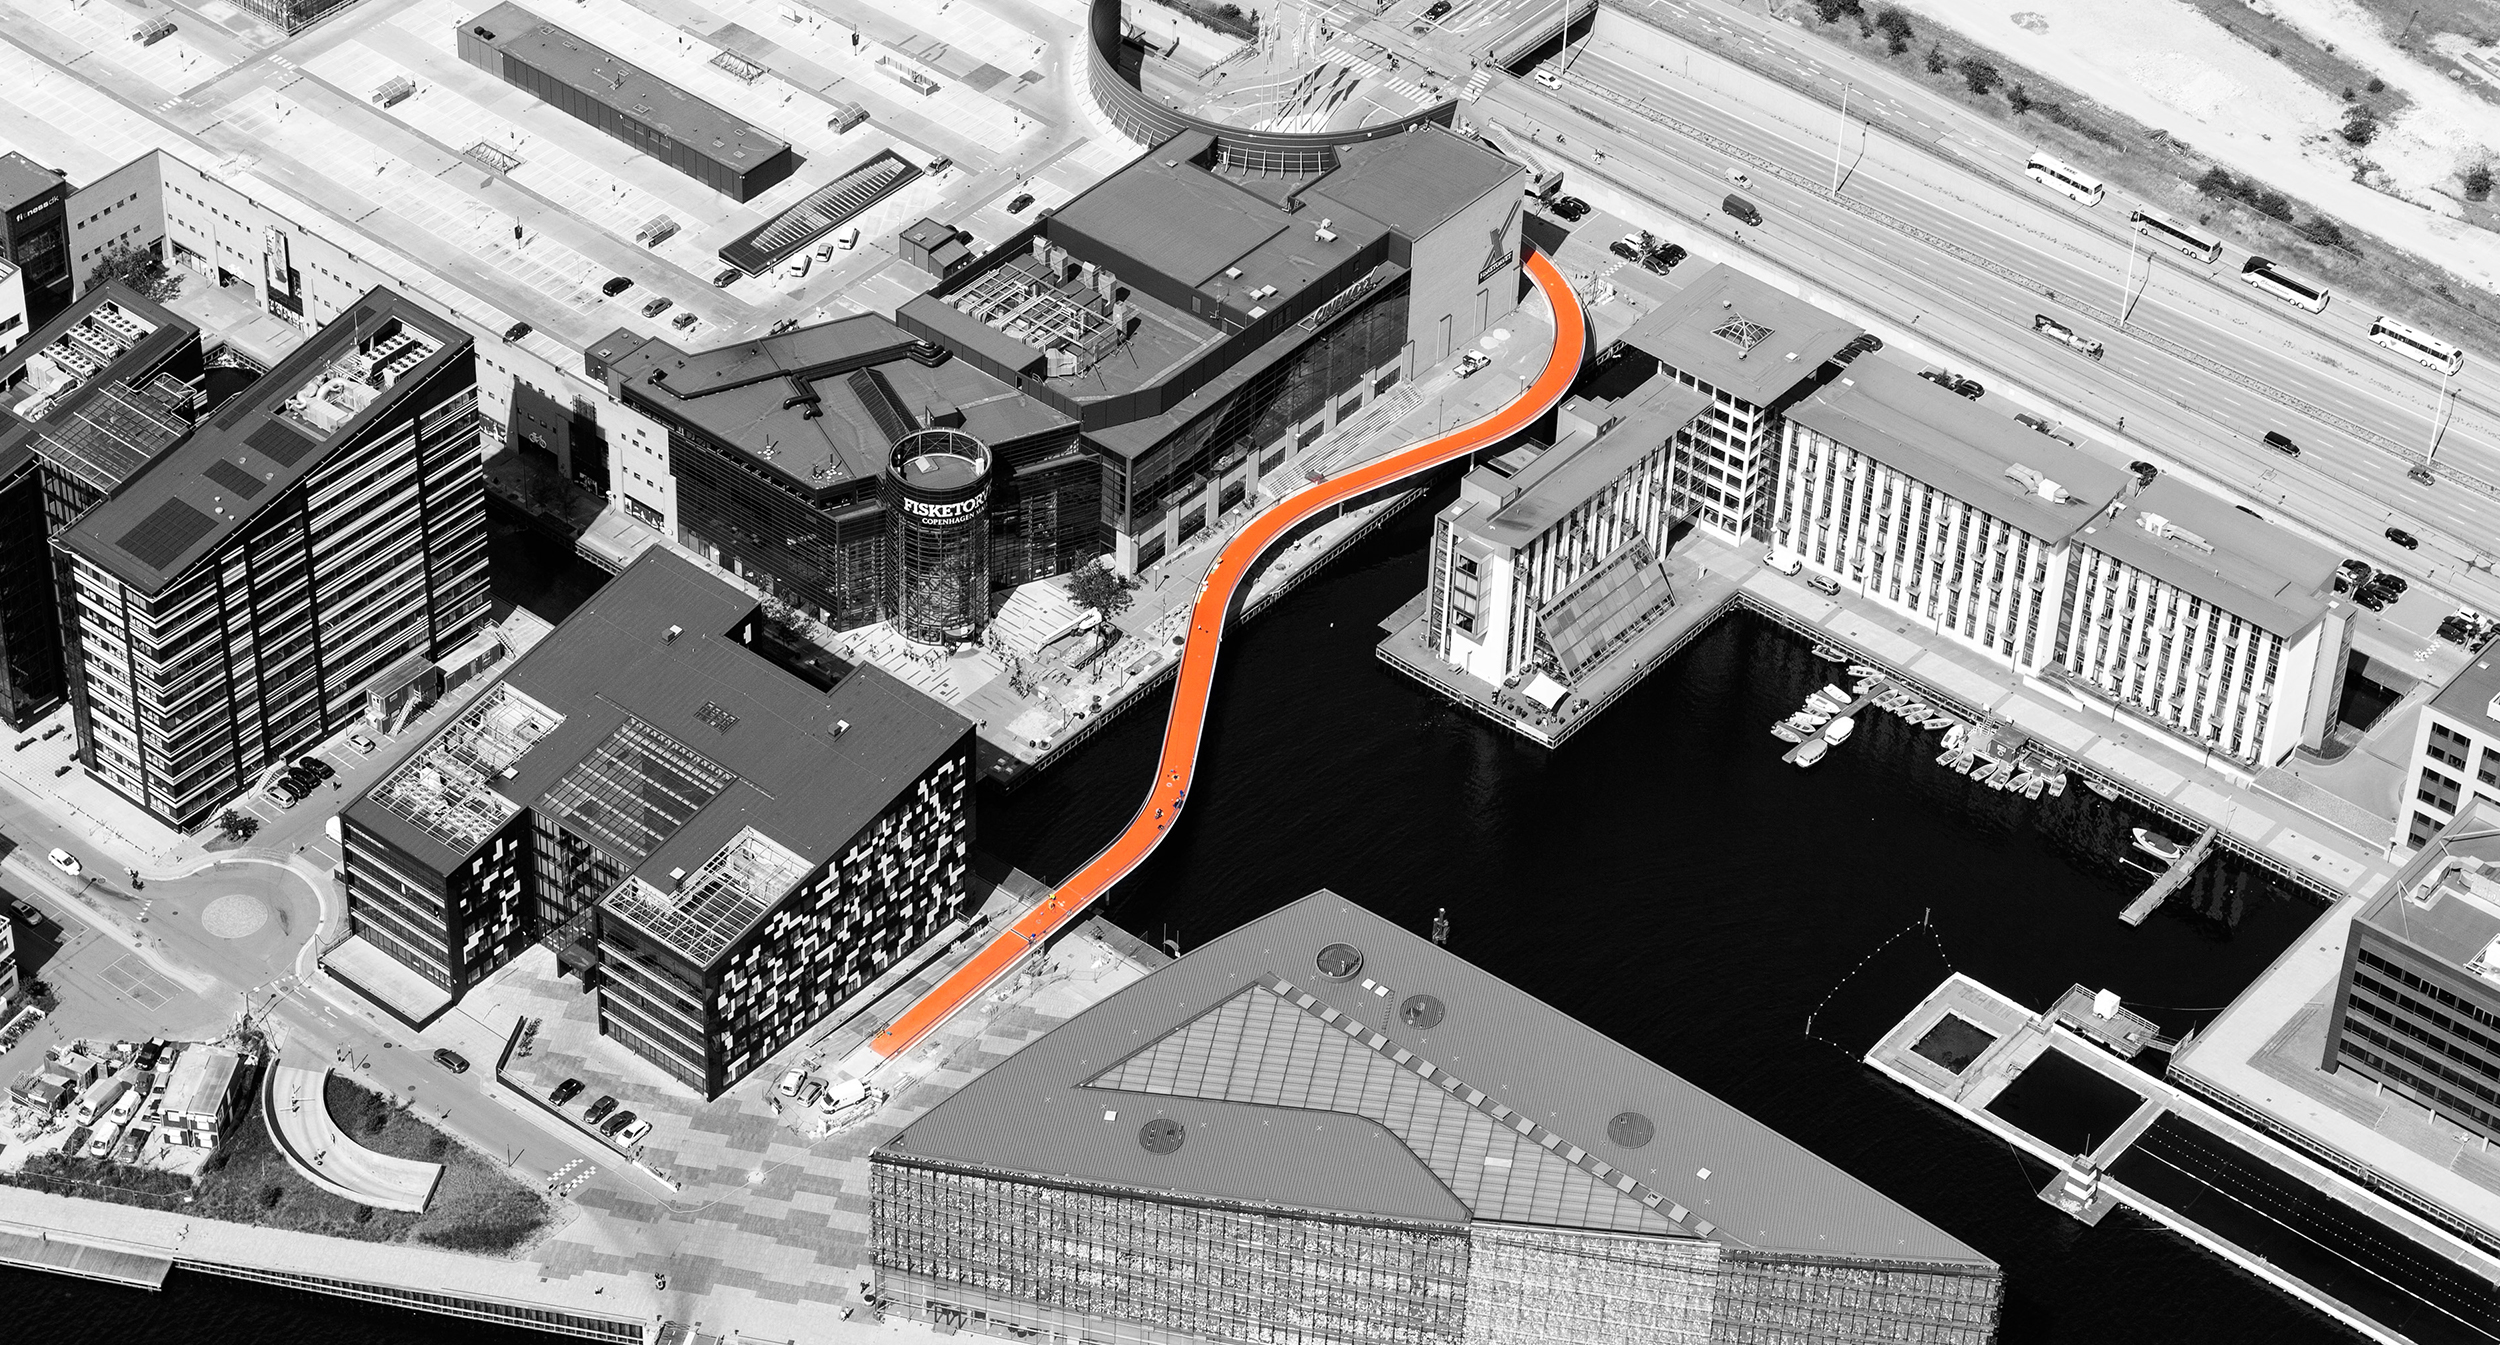 European Prize for Urban Public Space   , 2016   Copenhagen as a city,  The Bicycle Snake  and two other projects were winners of the European Prize for Urban Public Space in 2016.